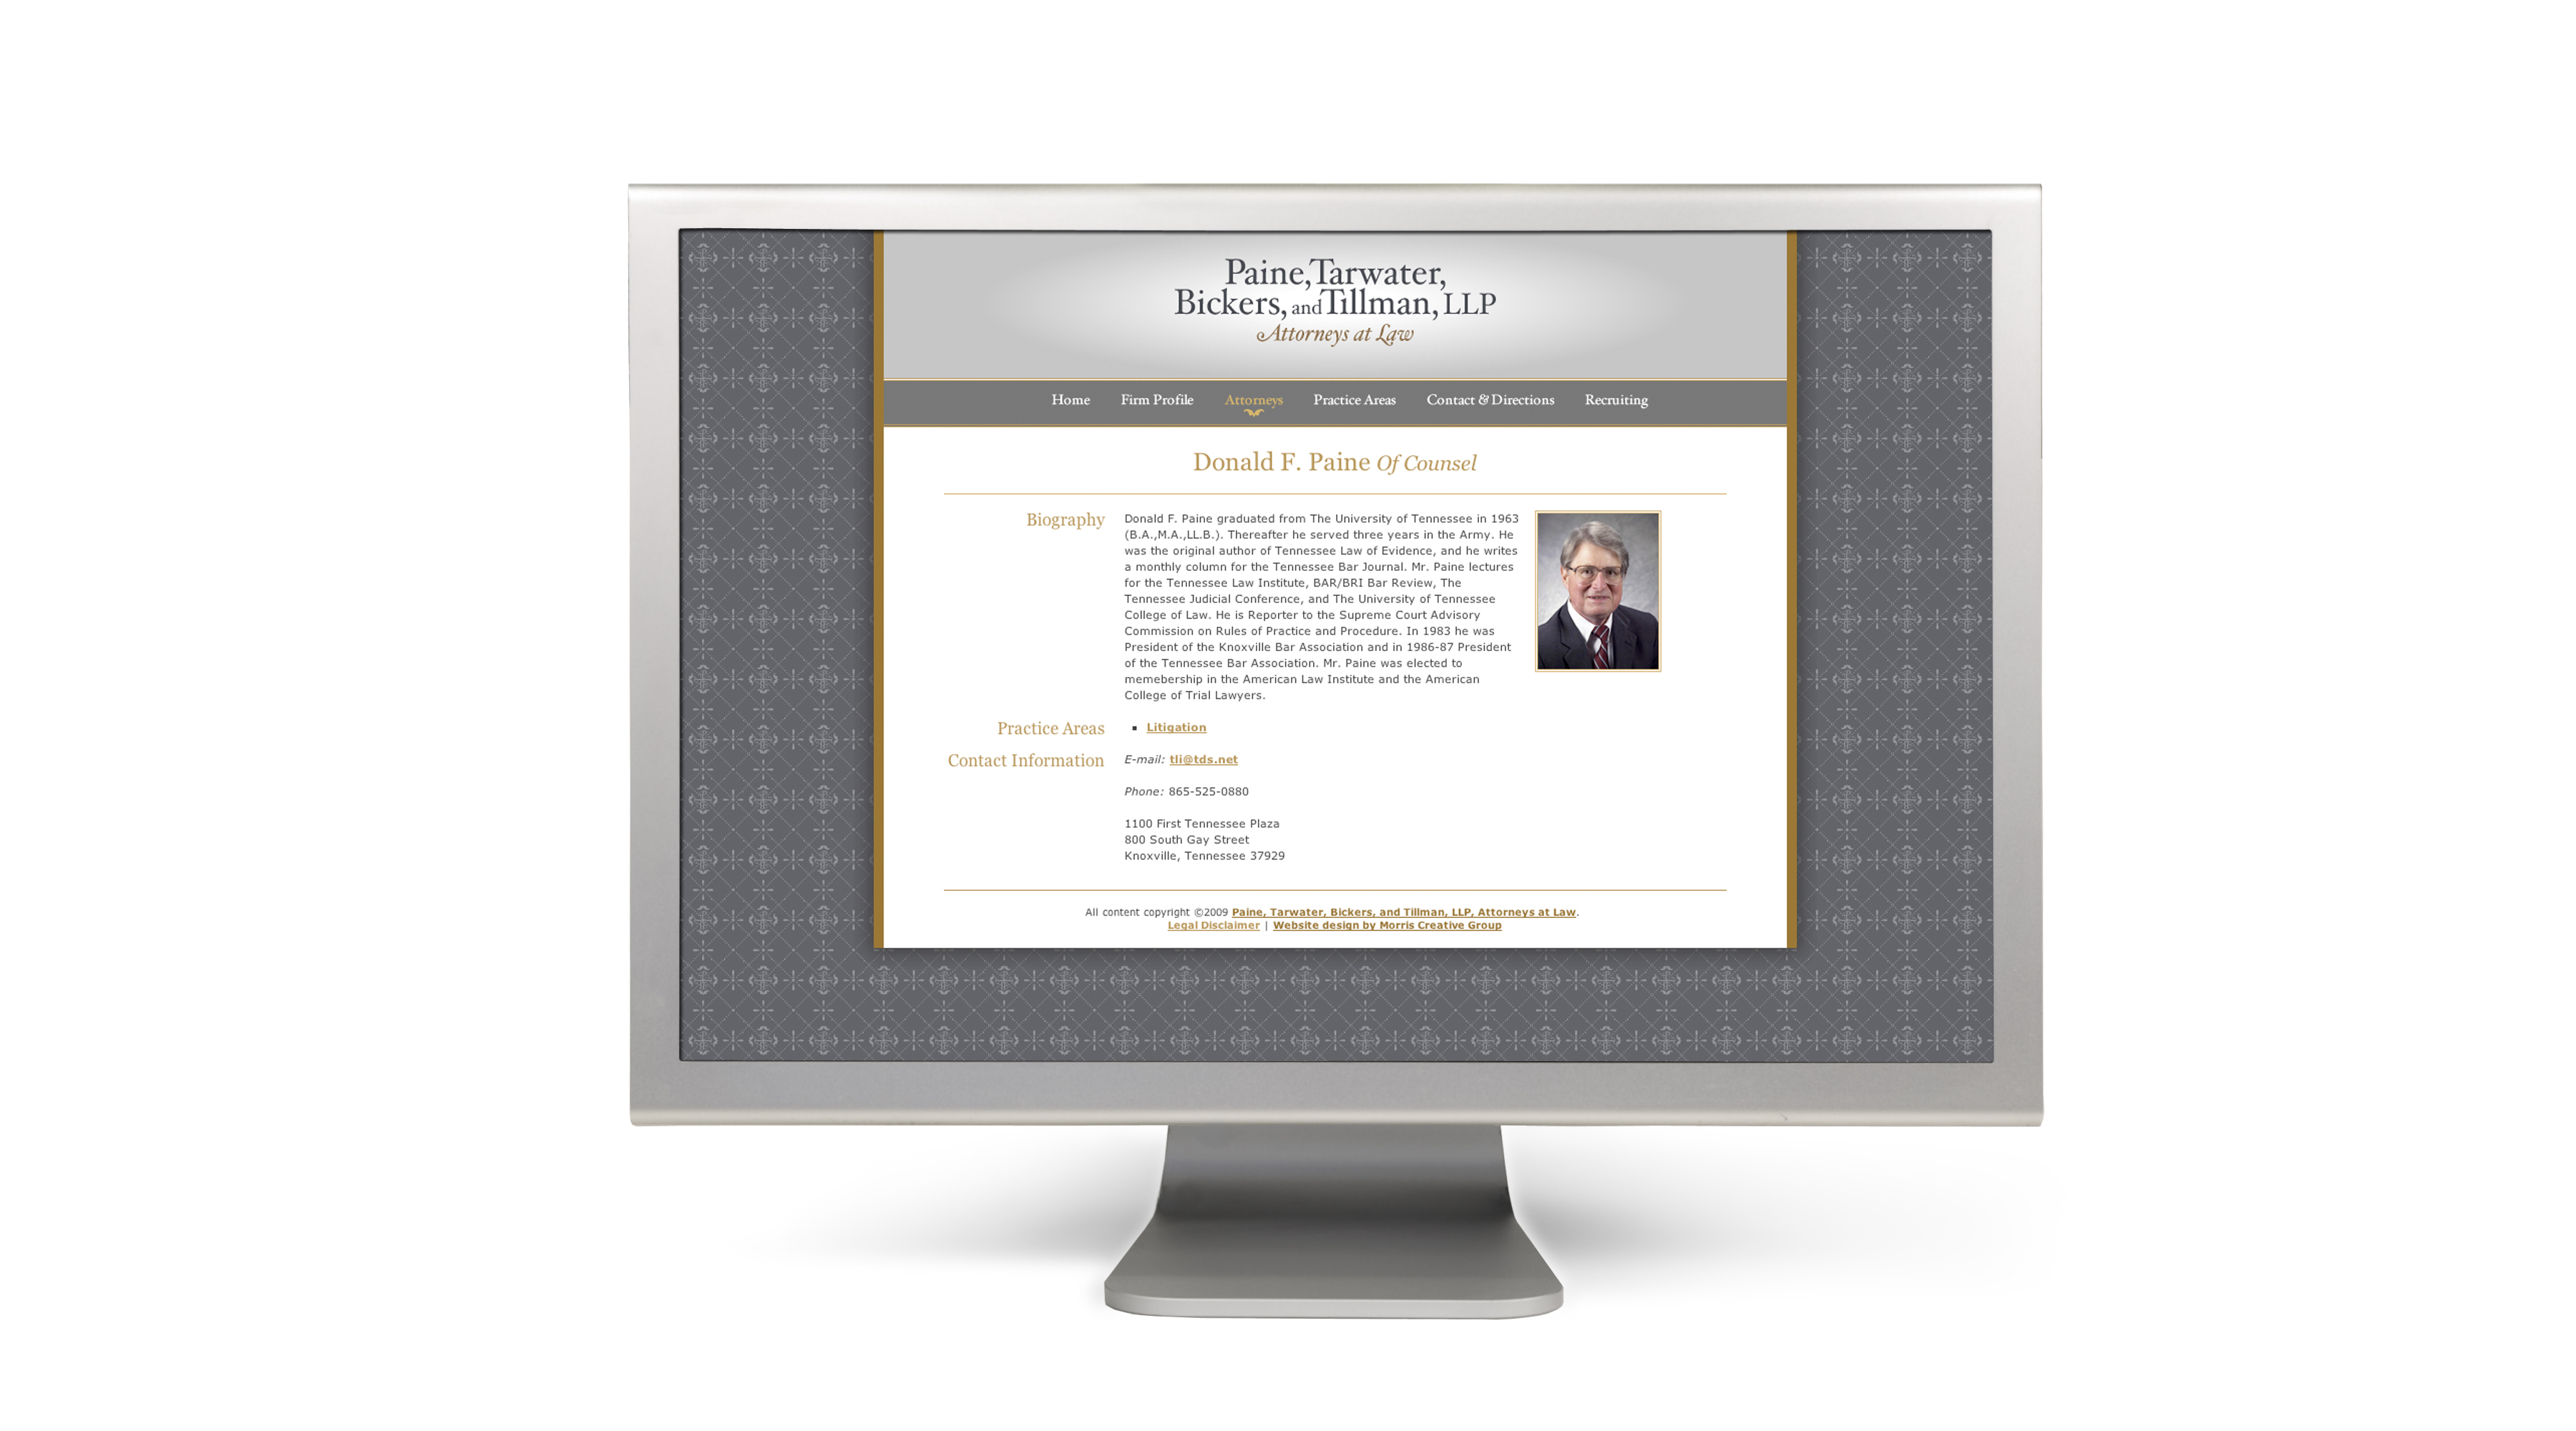 PTW web1 Paine, Tarwater, Bickers, and Tillman, LLP